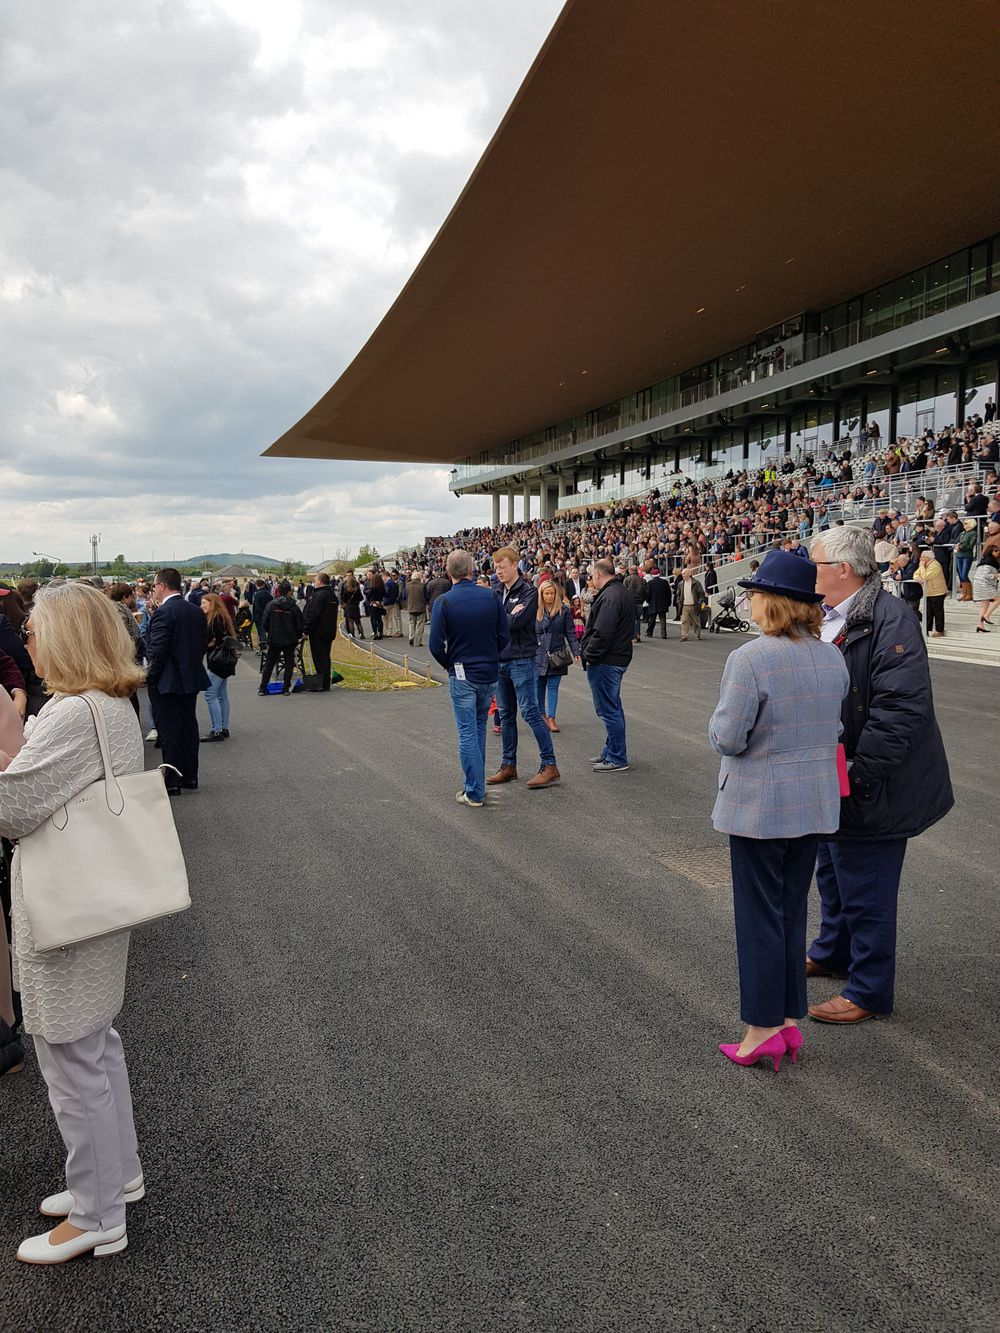 The opening Curragh meeting of the season on Sunday the